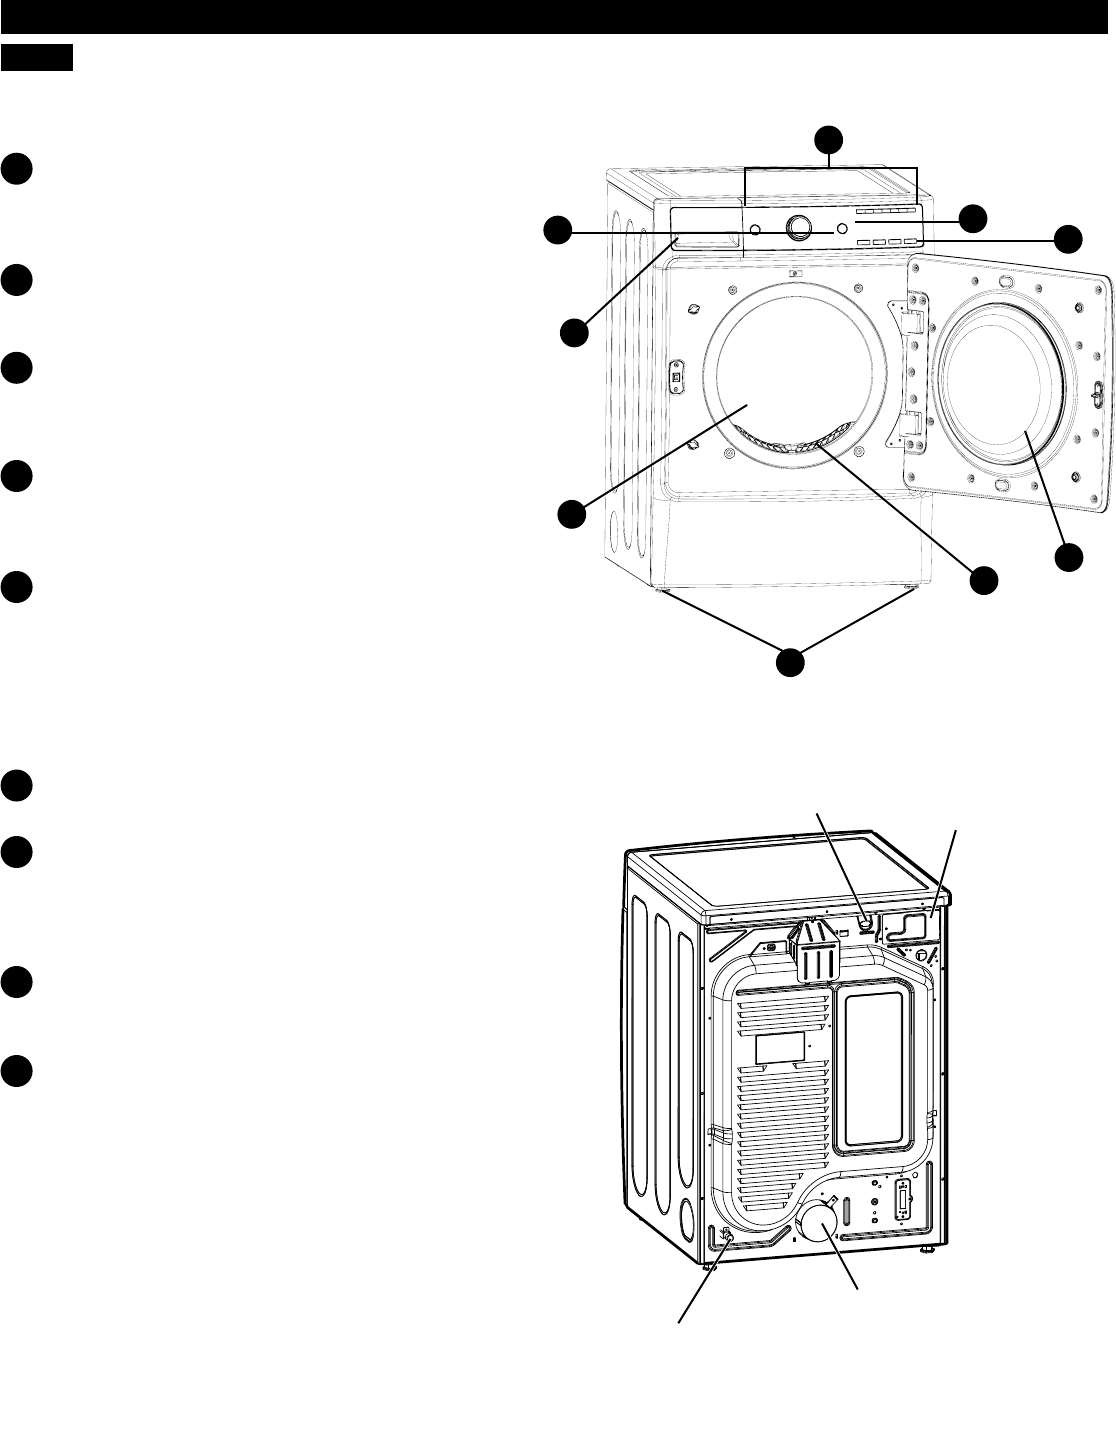 kenmore front load dryer manual